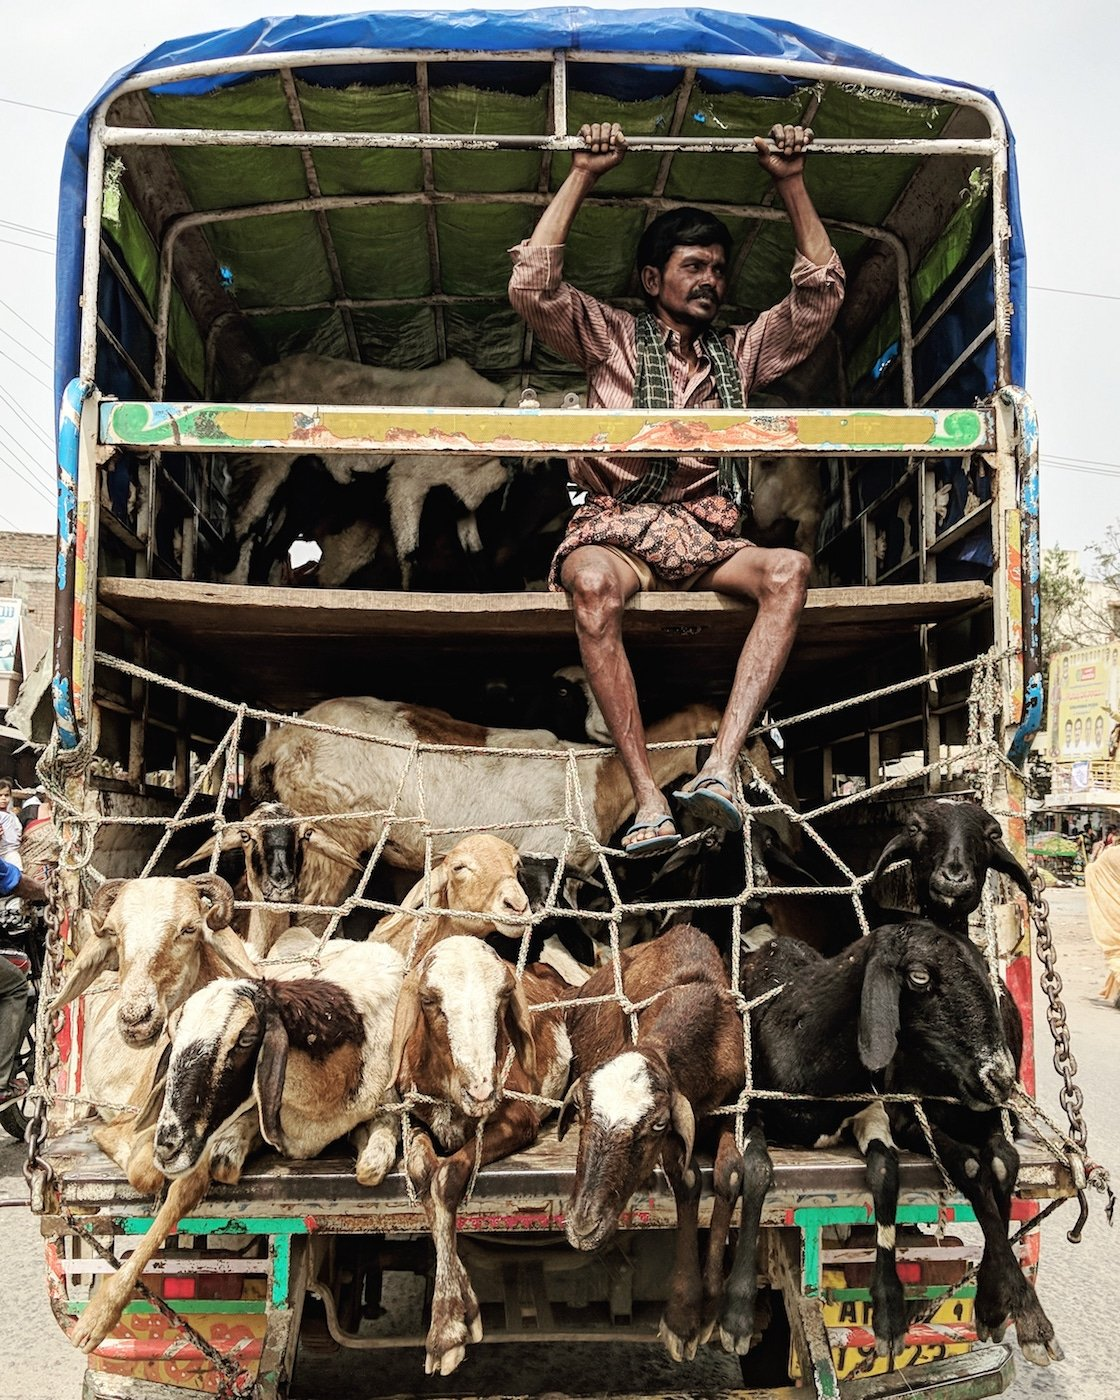 Man taking goats to the market in a truck